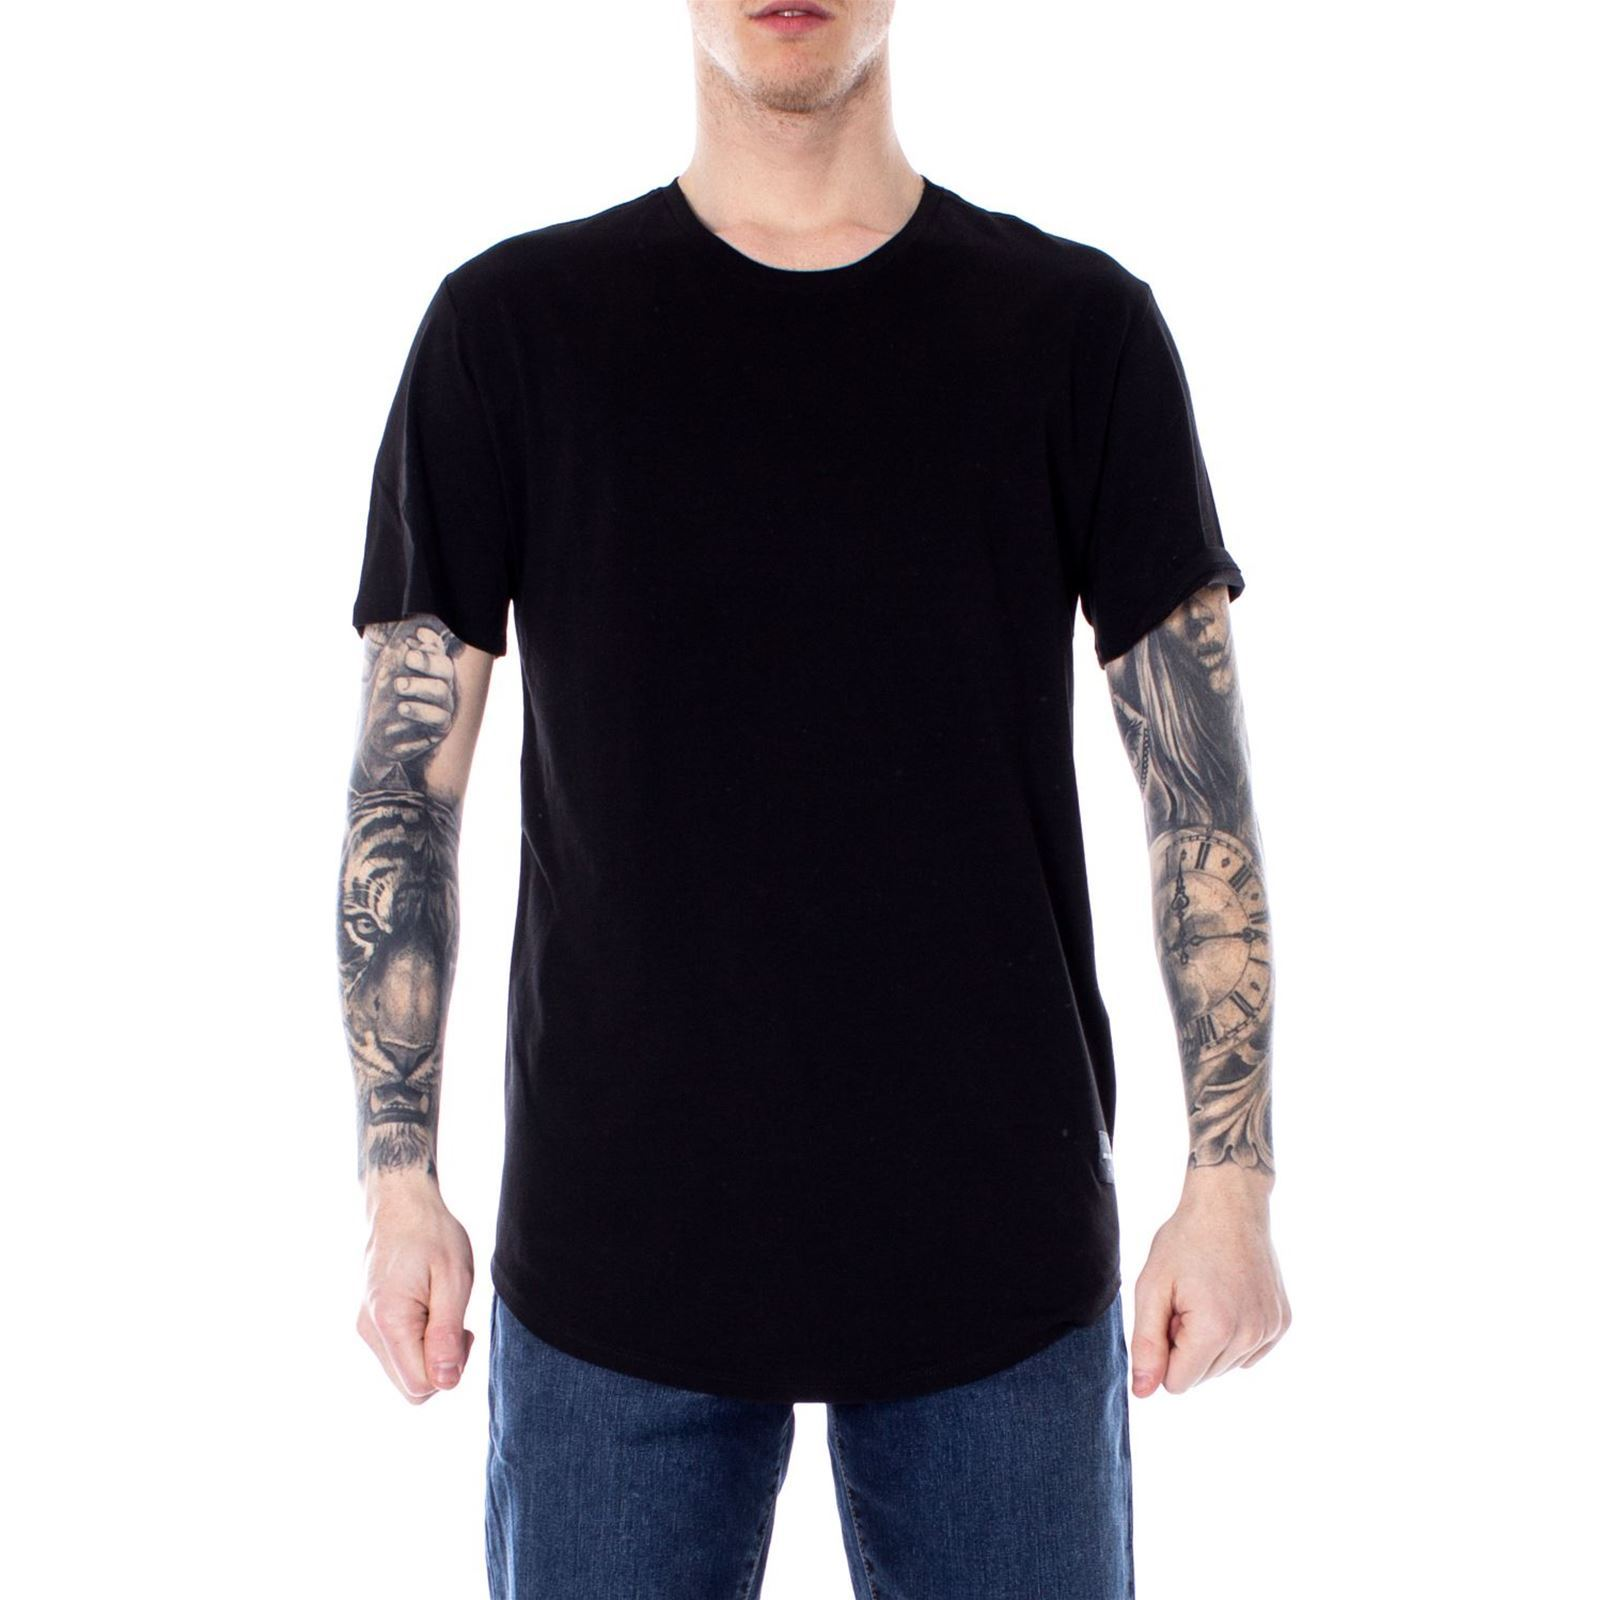 CourtesNoir Homme T Manches V Sons shirt Onlyamp; 8kn0wXONP